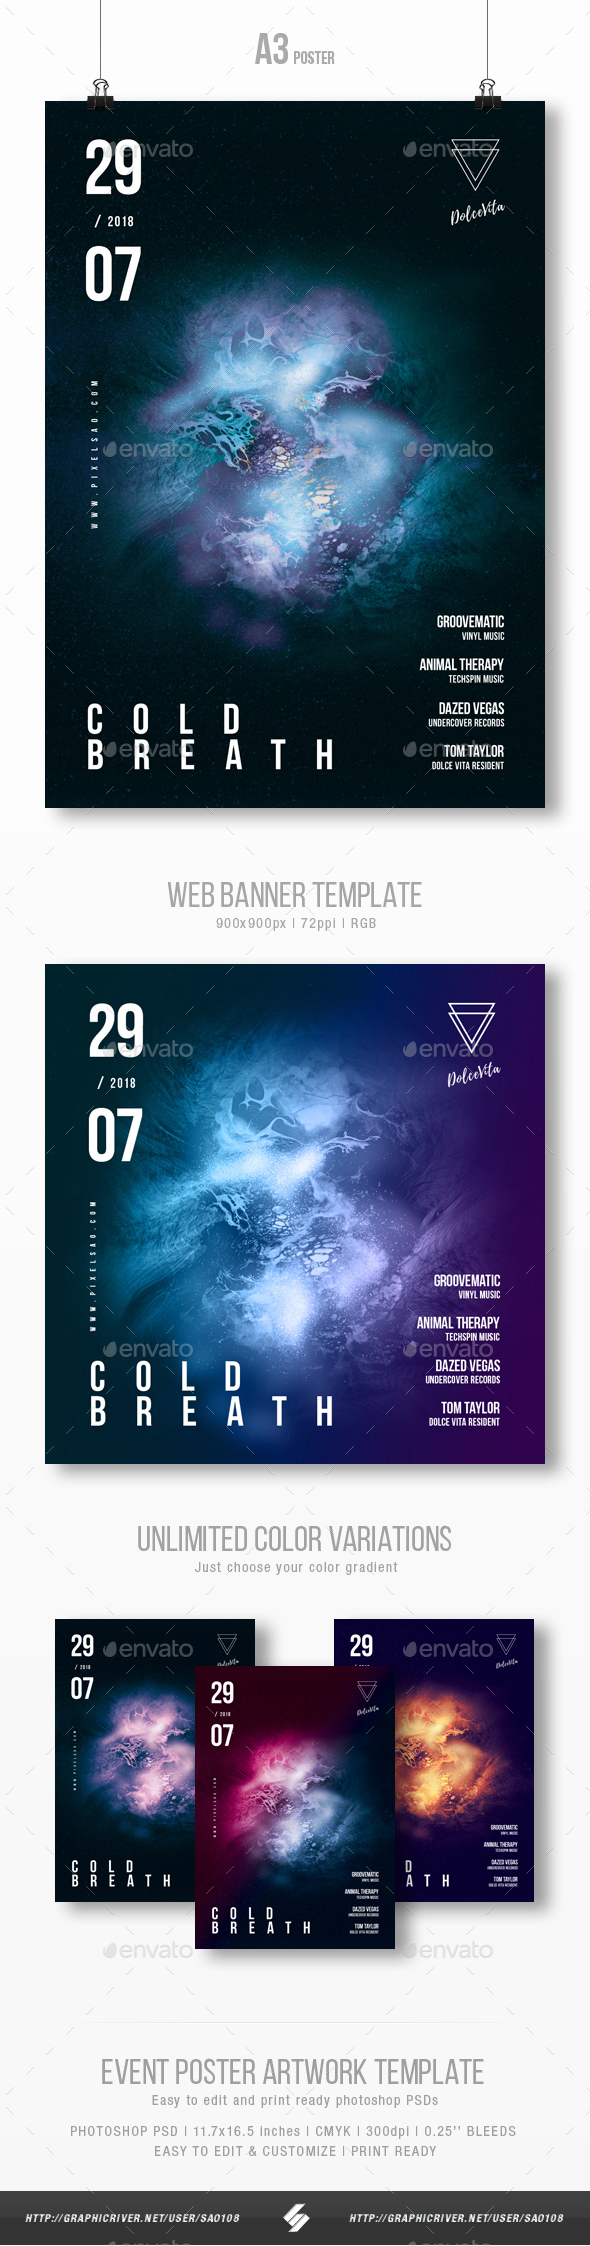 Cold Breath - Progressive Party Flyer / Poster Template A3 - Clubs & Parties Events